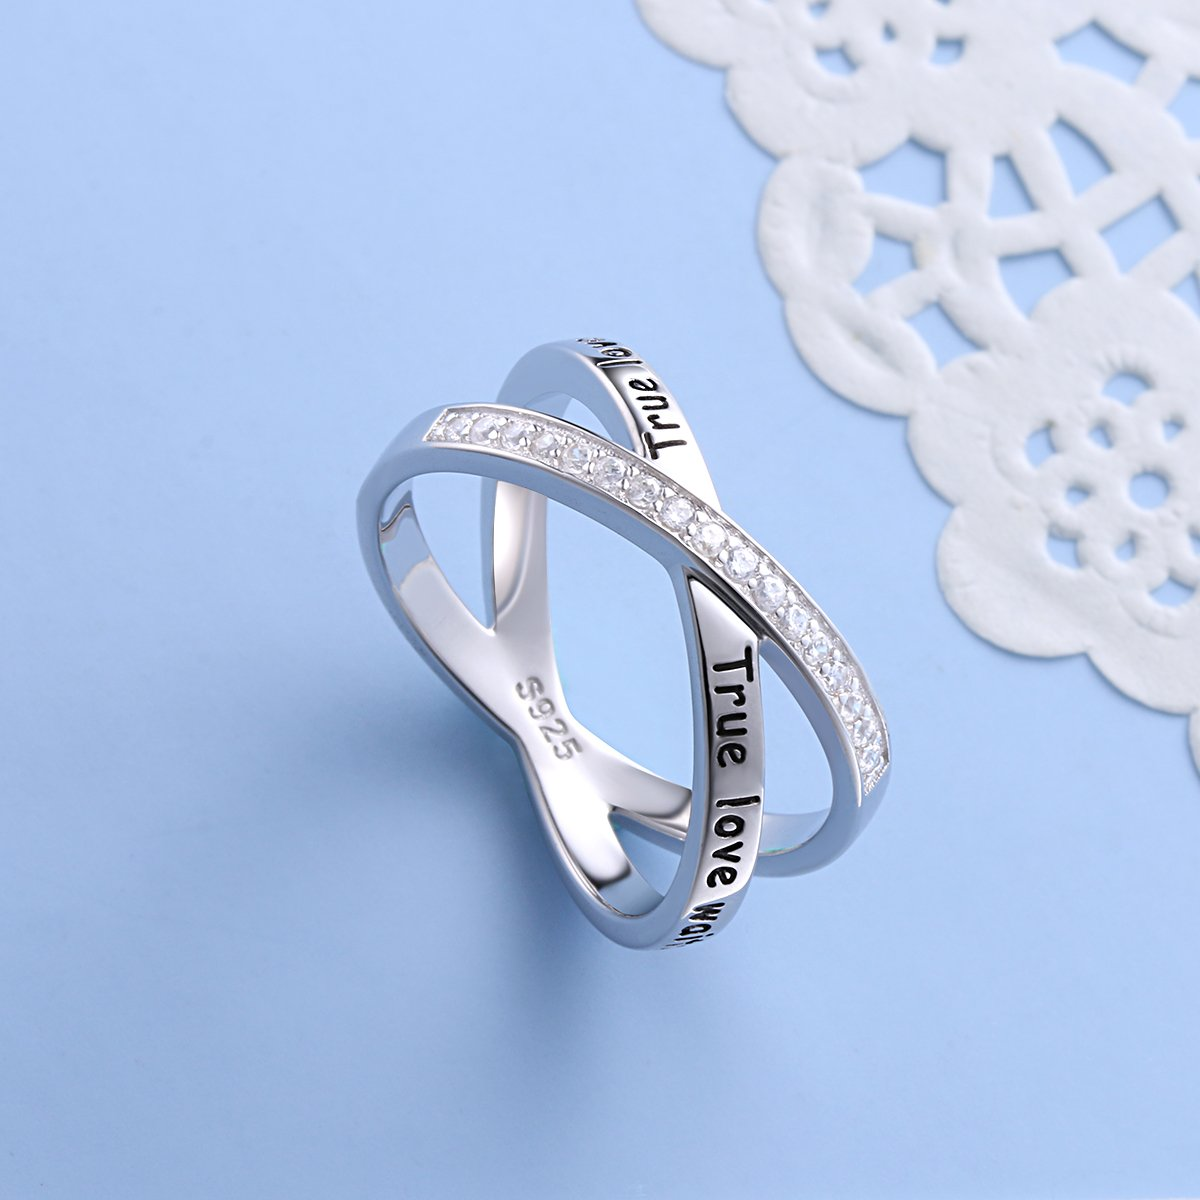 S925 Sterling Silver True Love Waits Infinity Criss Cross Rings for Women Lady, Size 7 by Silver Light Jewelry (Image #4)